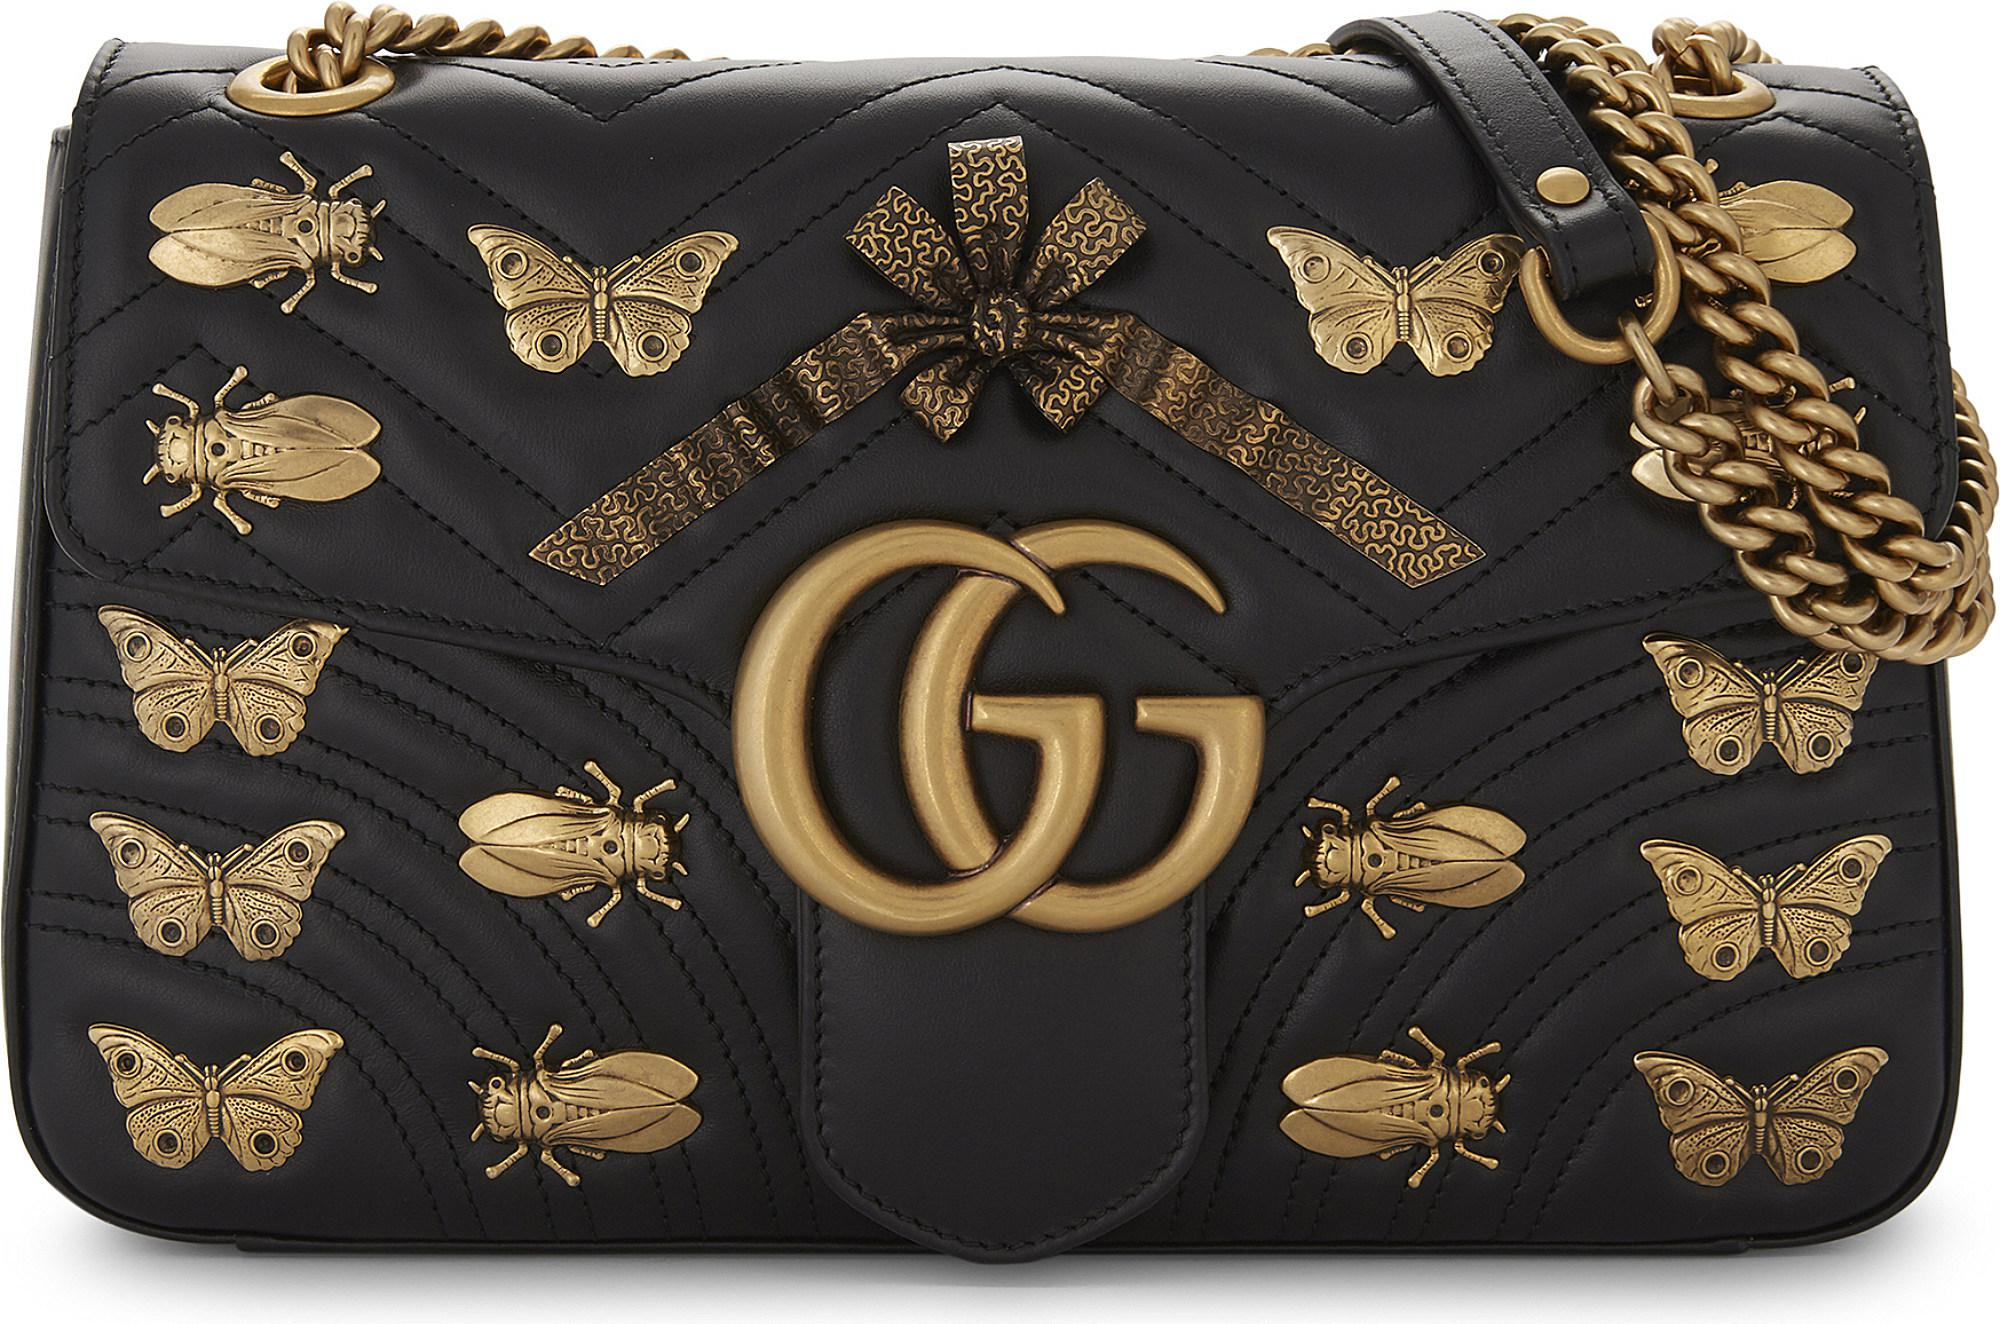 d87d83726908 Gucci Gg Marmont Animal Stud Cross-body Bag in Black - Lyst